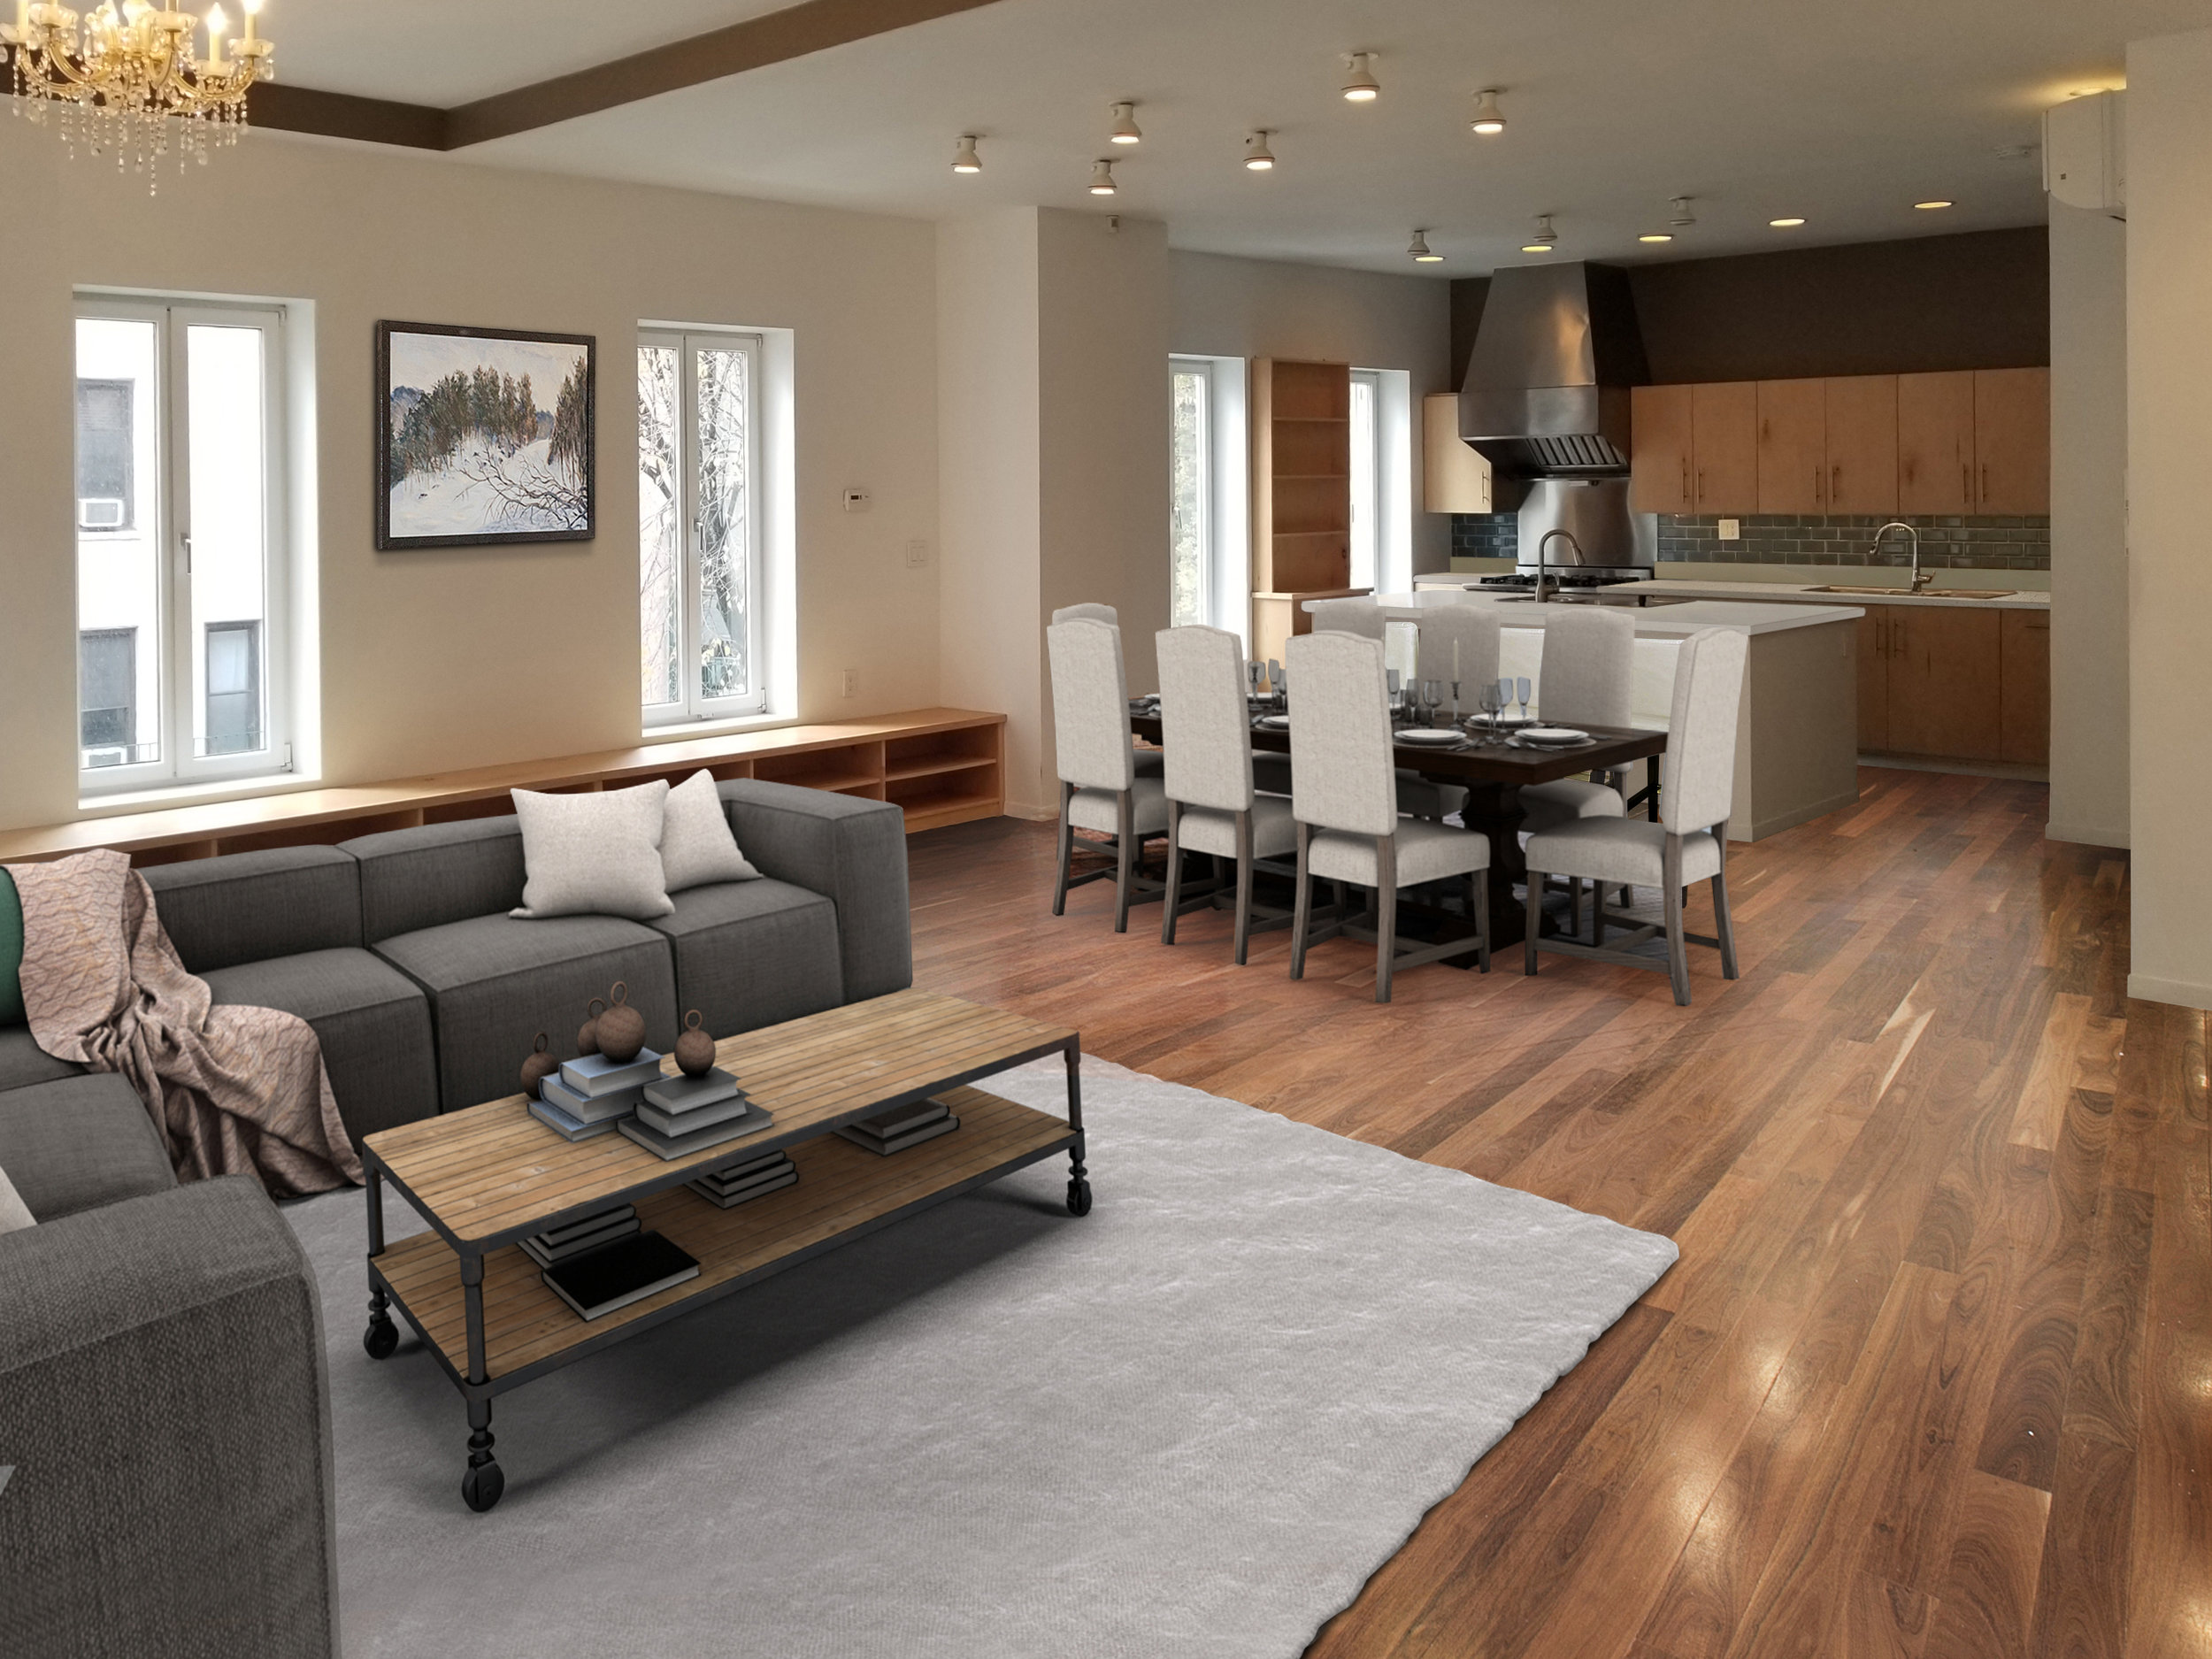 Artist's renderings of interior finishes